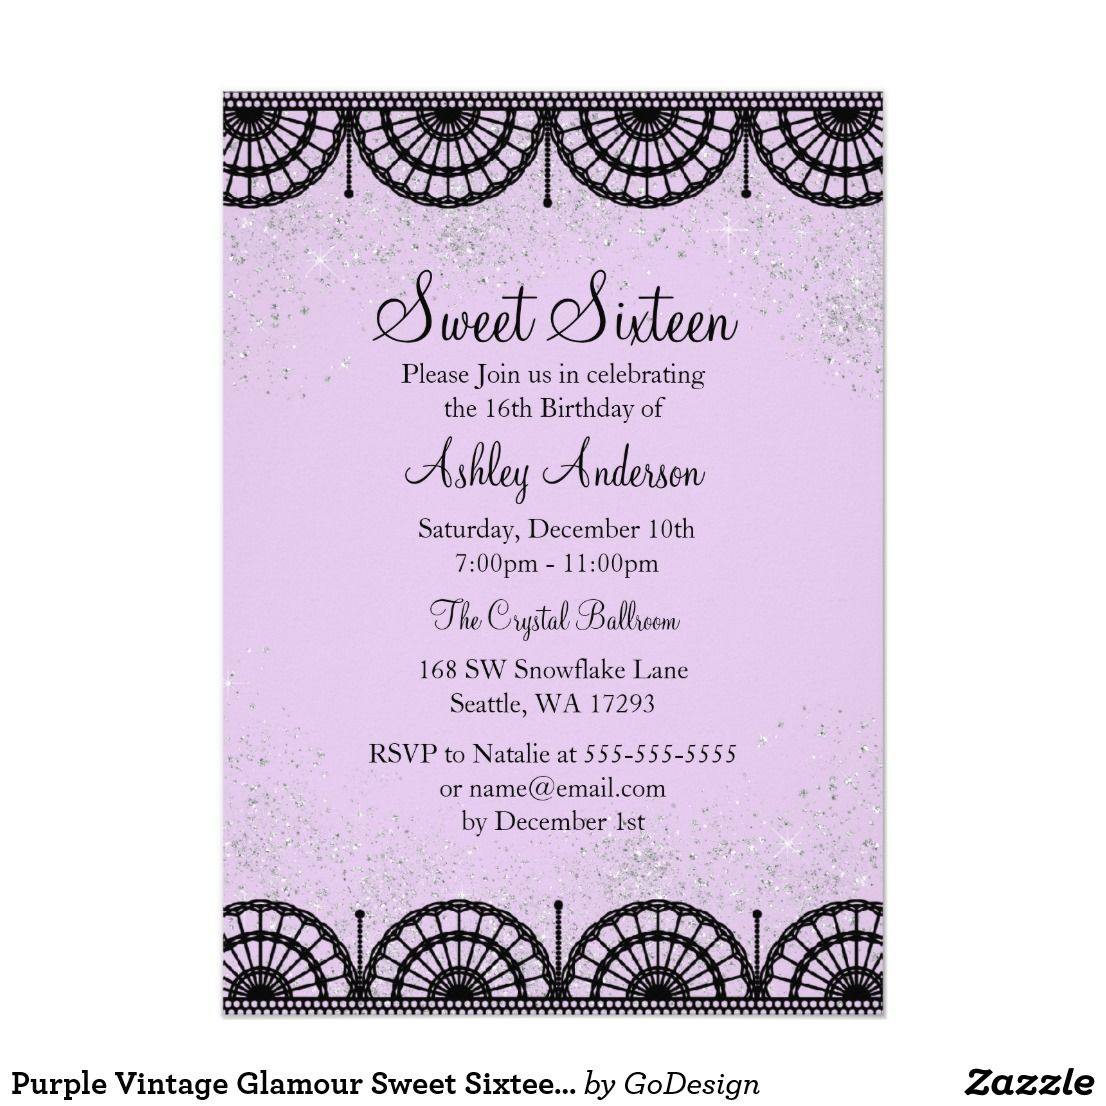 06d2414ea83 Purple Vintage Glamour Sweet Sixteen Invite Elegant Black lace   sparkle  glitter. Available in more colors in the GoDesign Store!